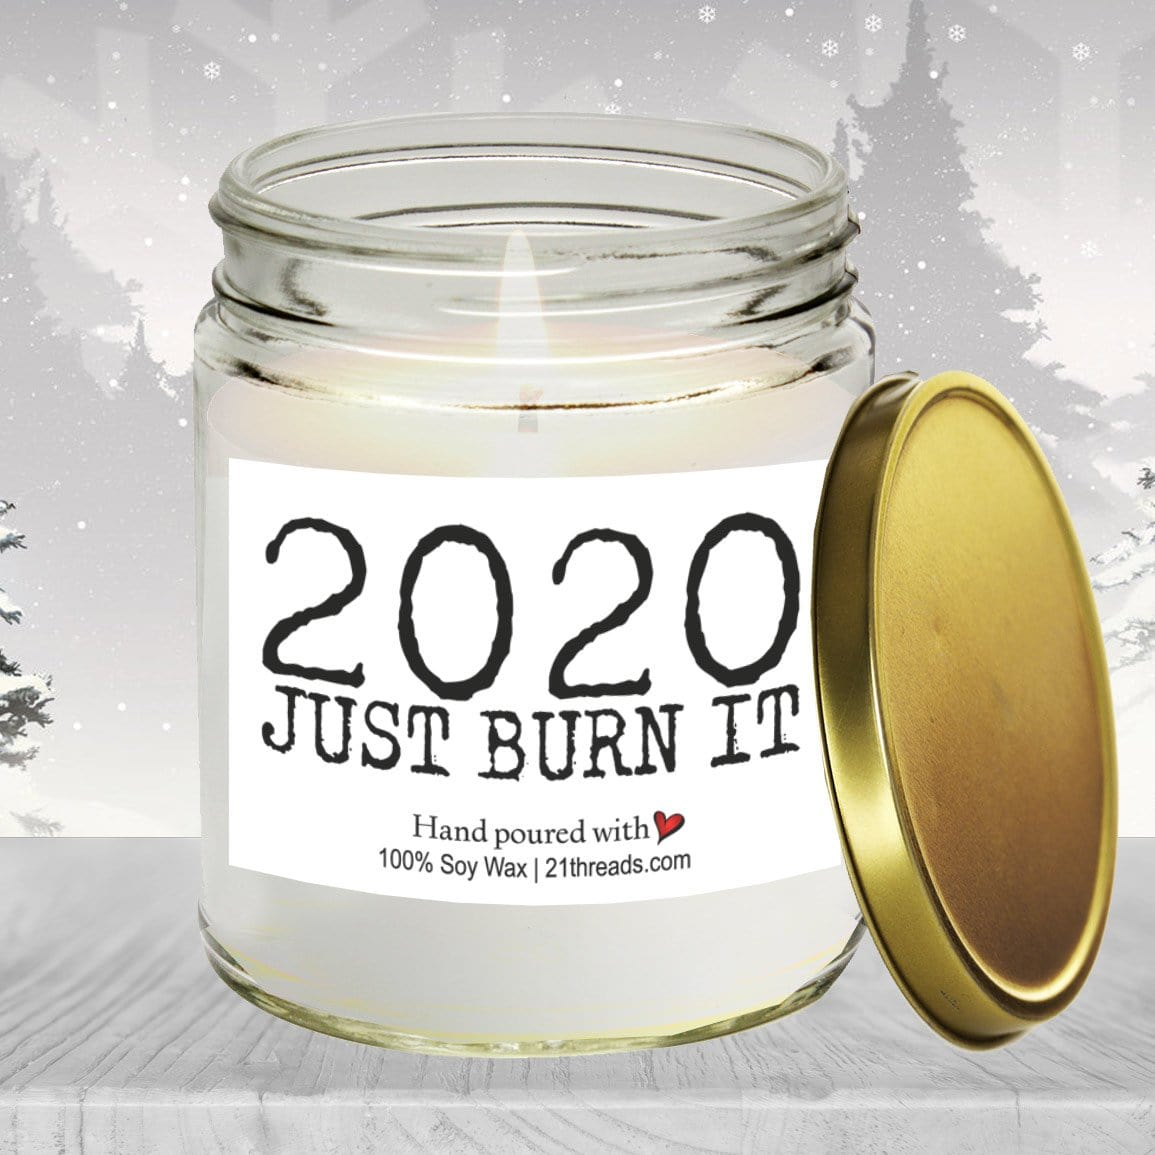 2020 Just Burn It 8oz Premium 100% Soy Candle